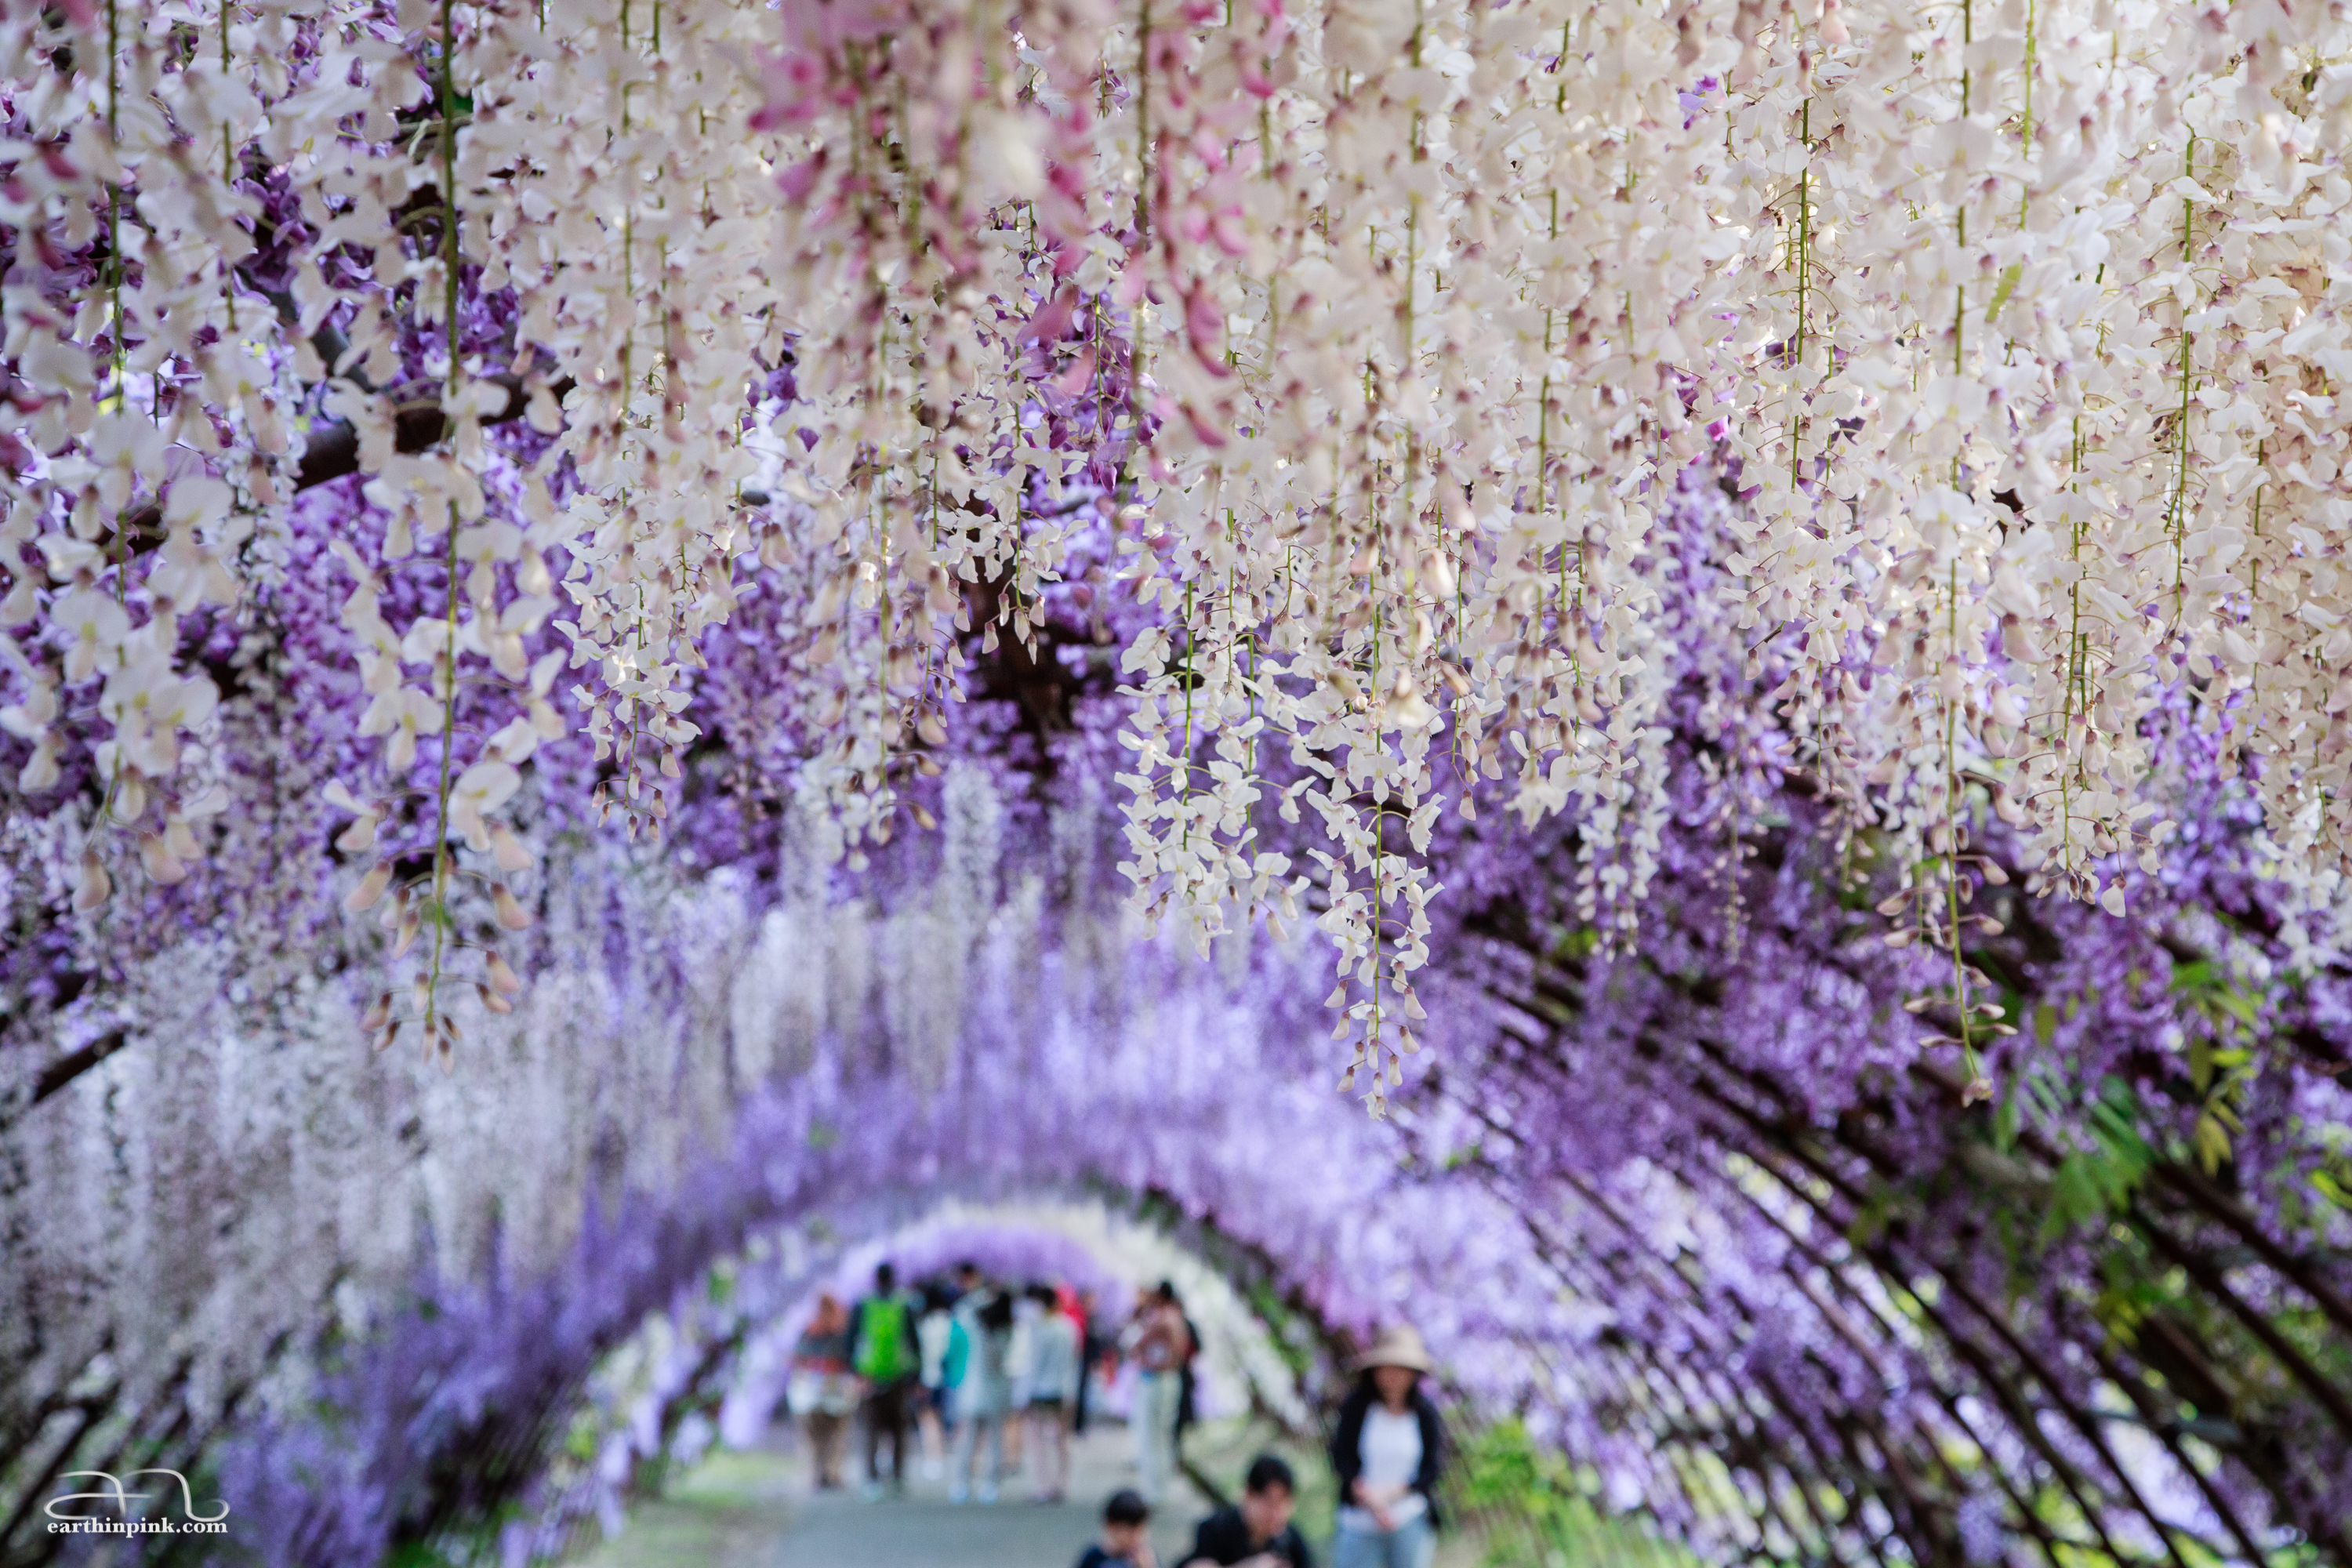 One of the two amazingly colorful and fragrant wisteria tunnels at the Kawachi Fuji Gardens in Kyushu